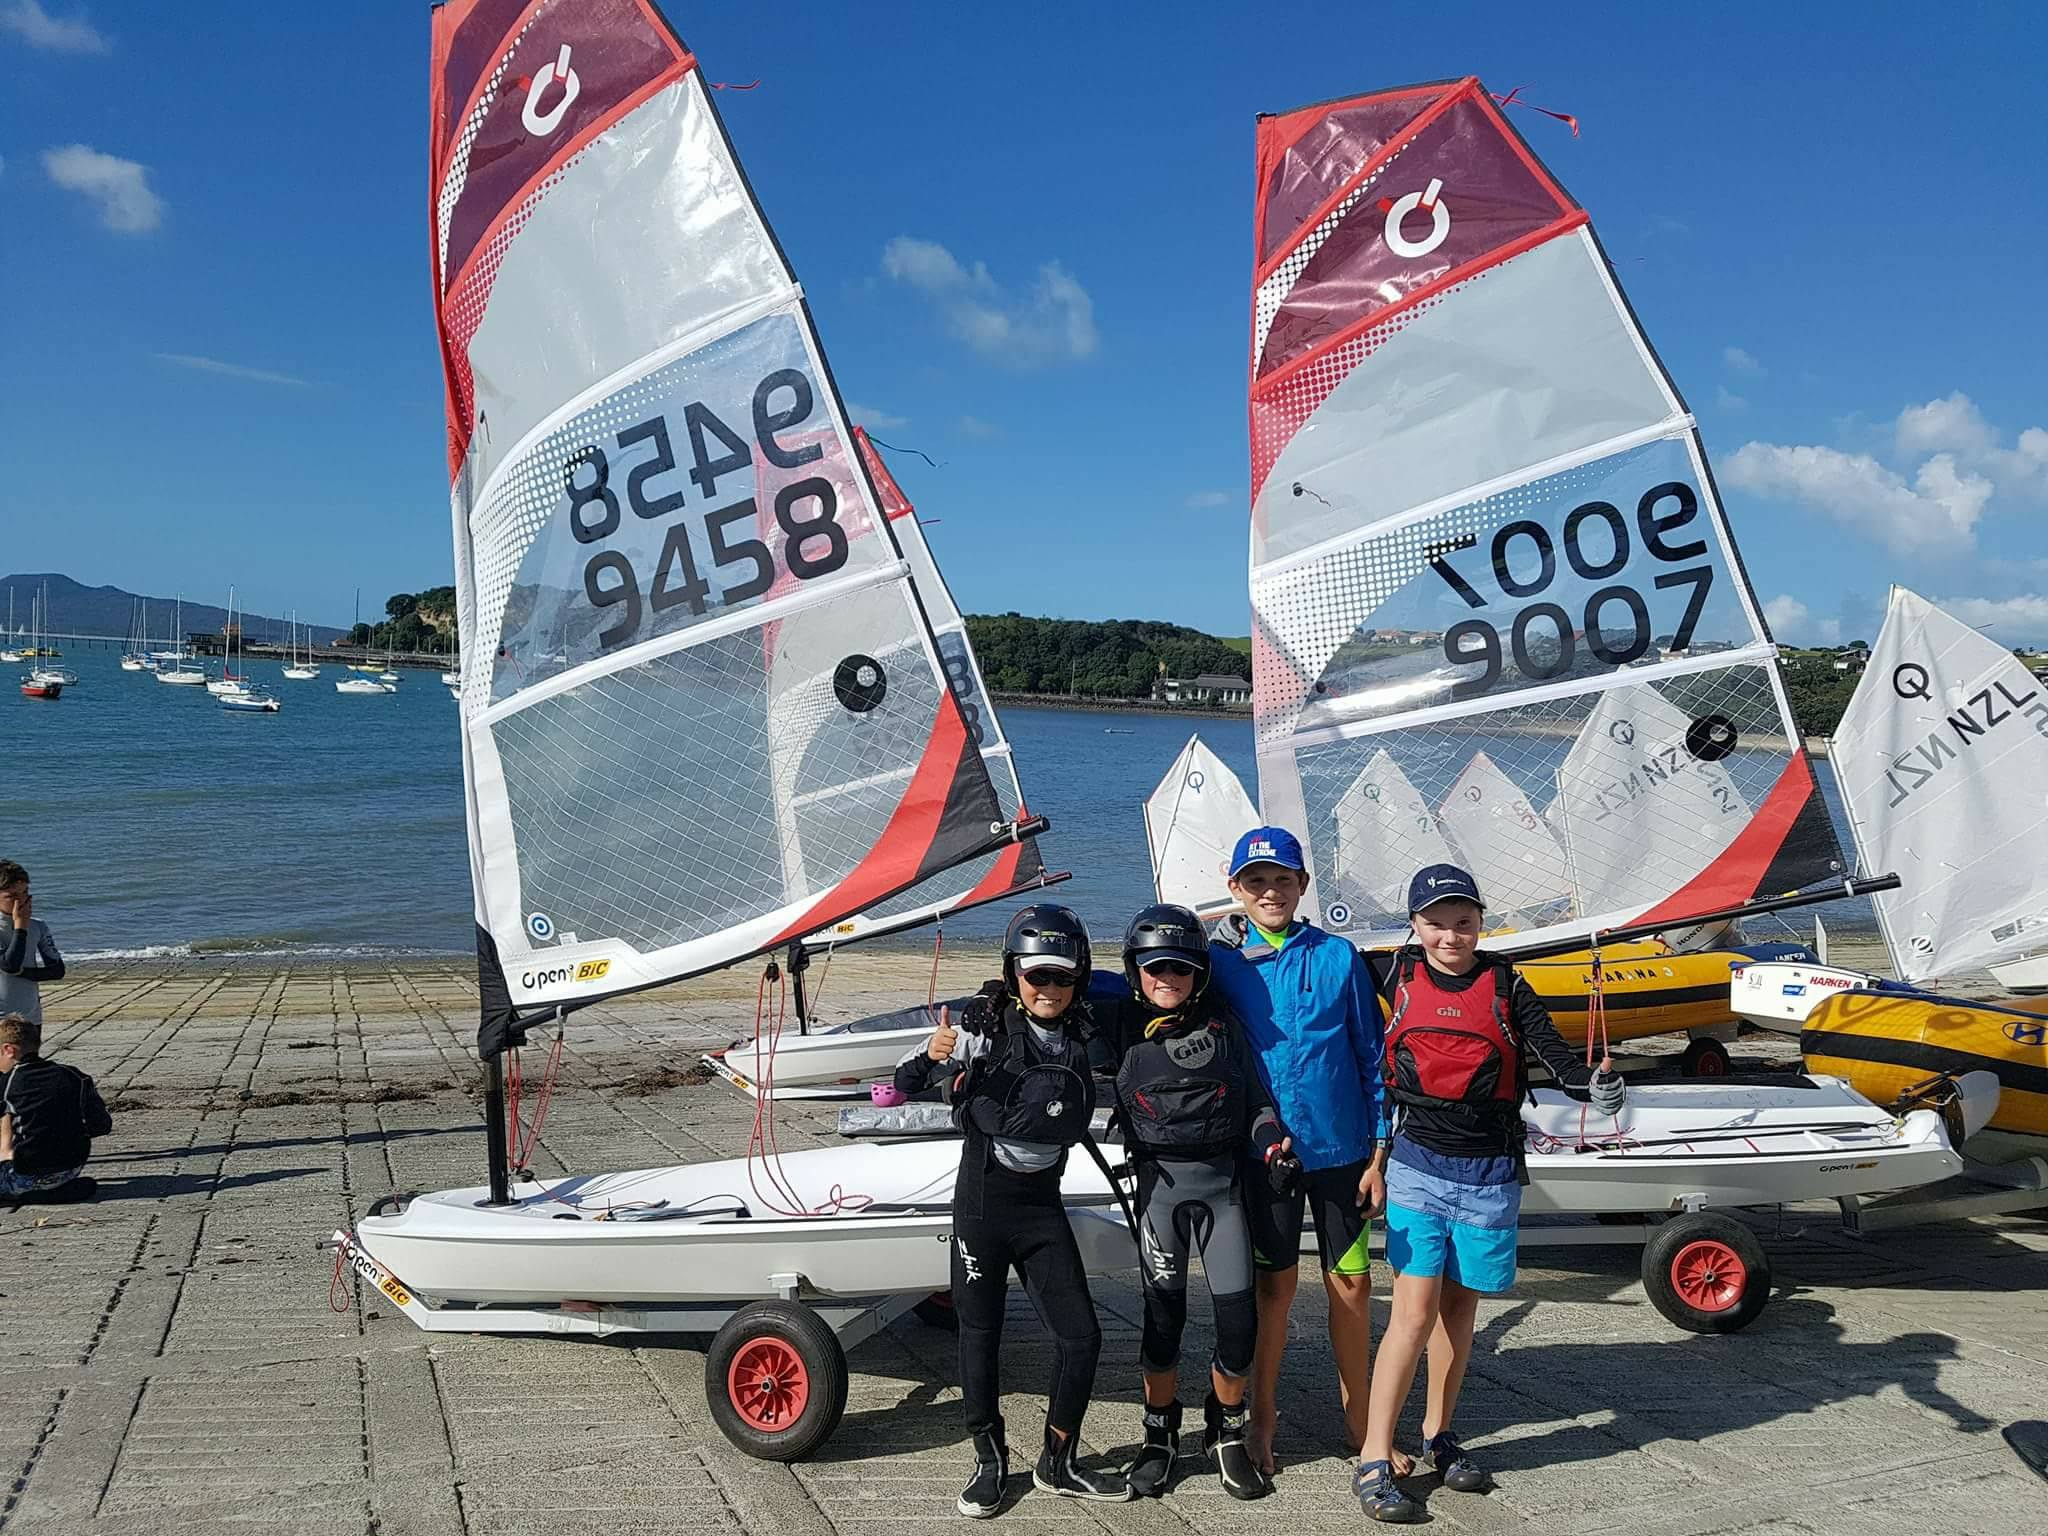 Akarana Sailing Academy introduces the Open Bic Class